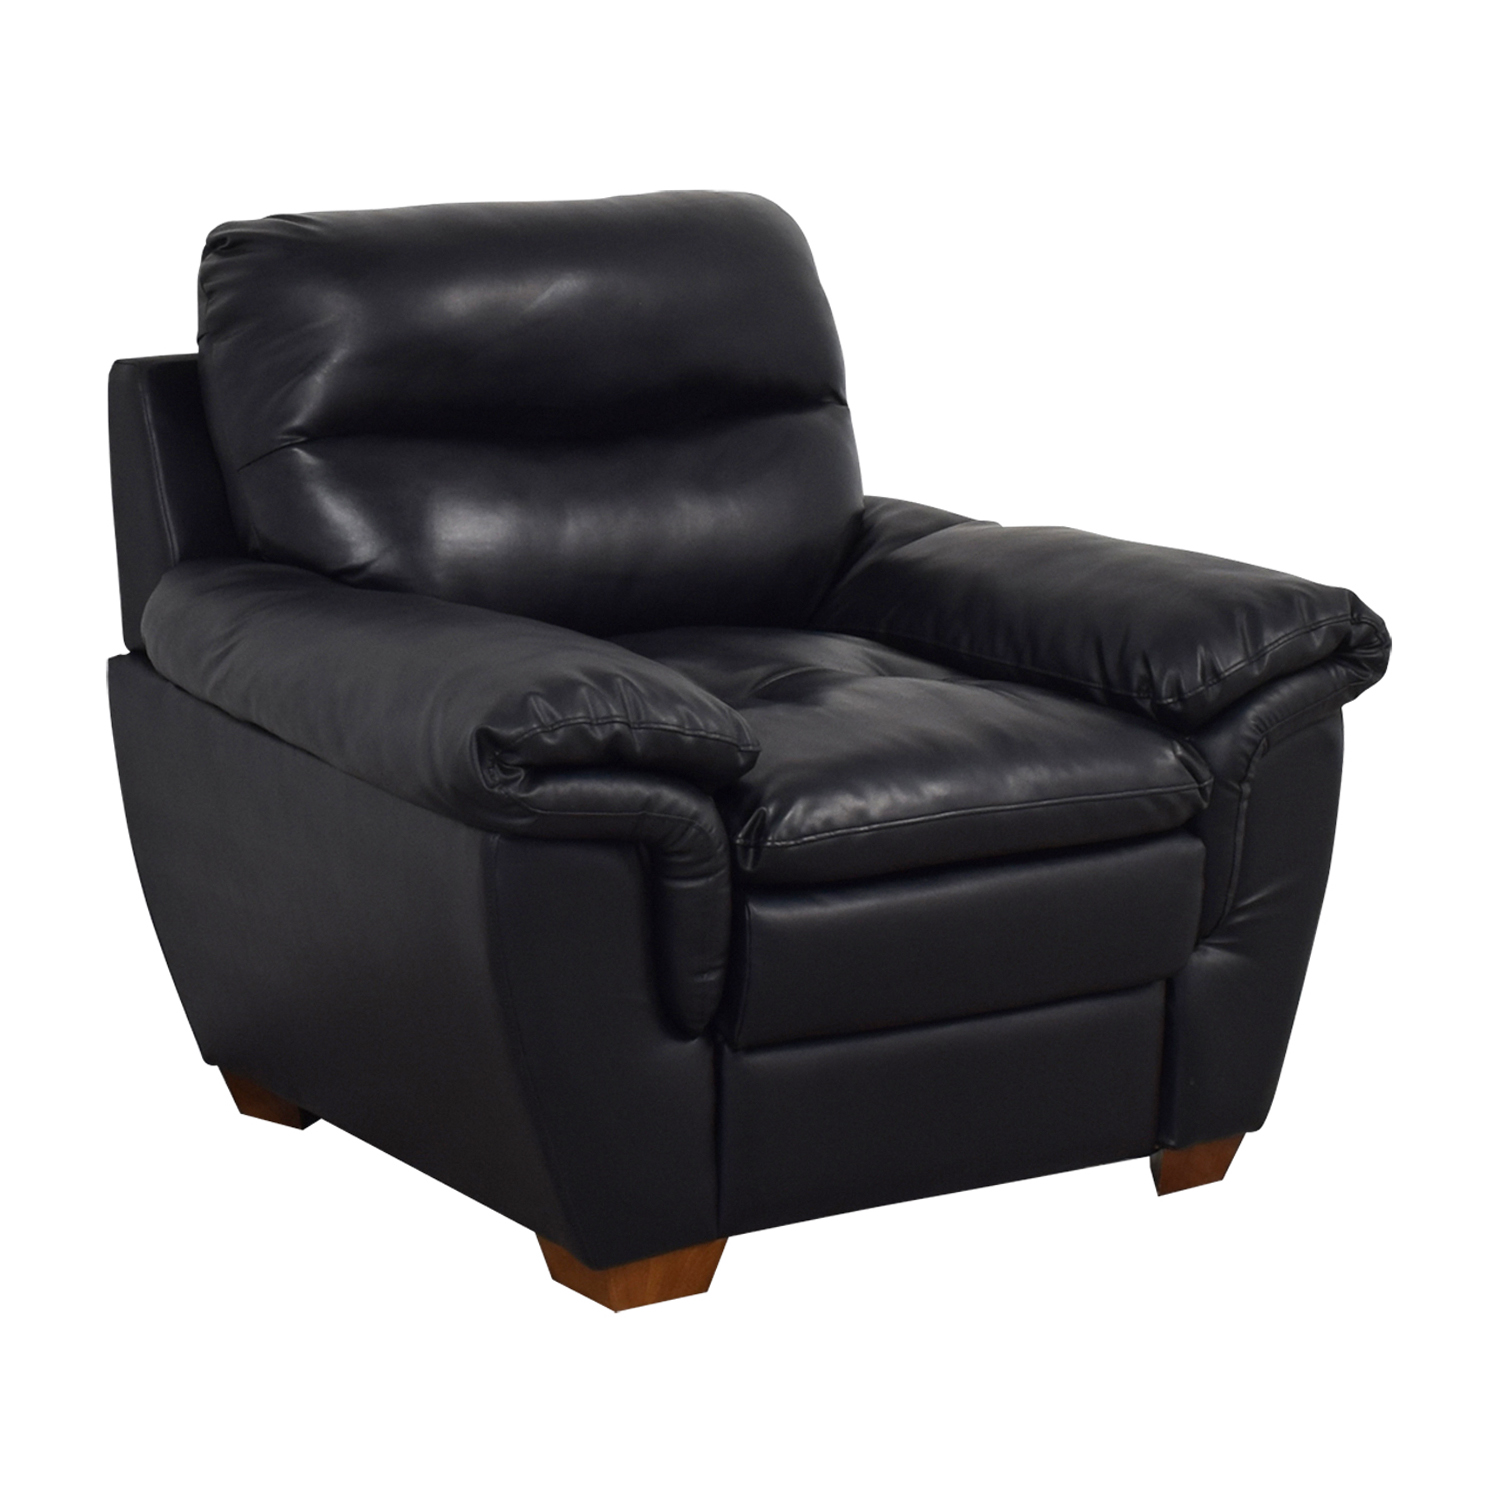 Jennifer Furniture Jennifer Furniture Wilton Black Accent Chair coupon